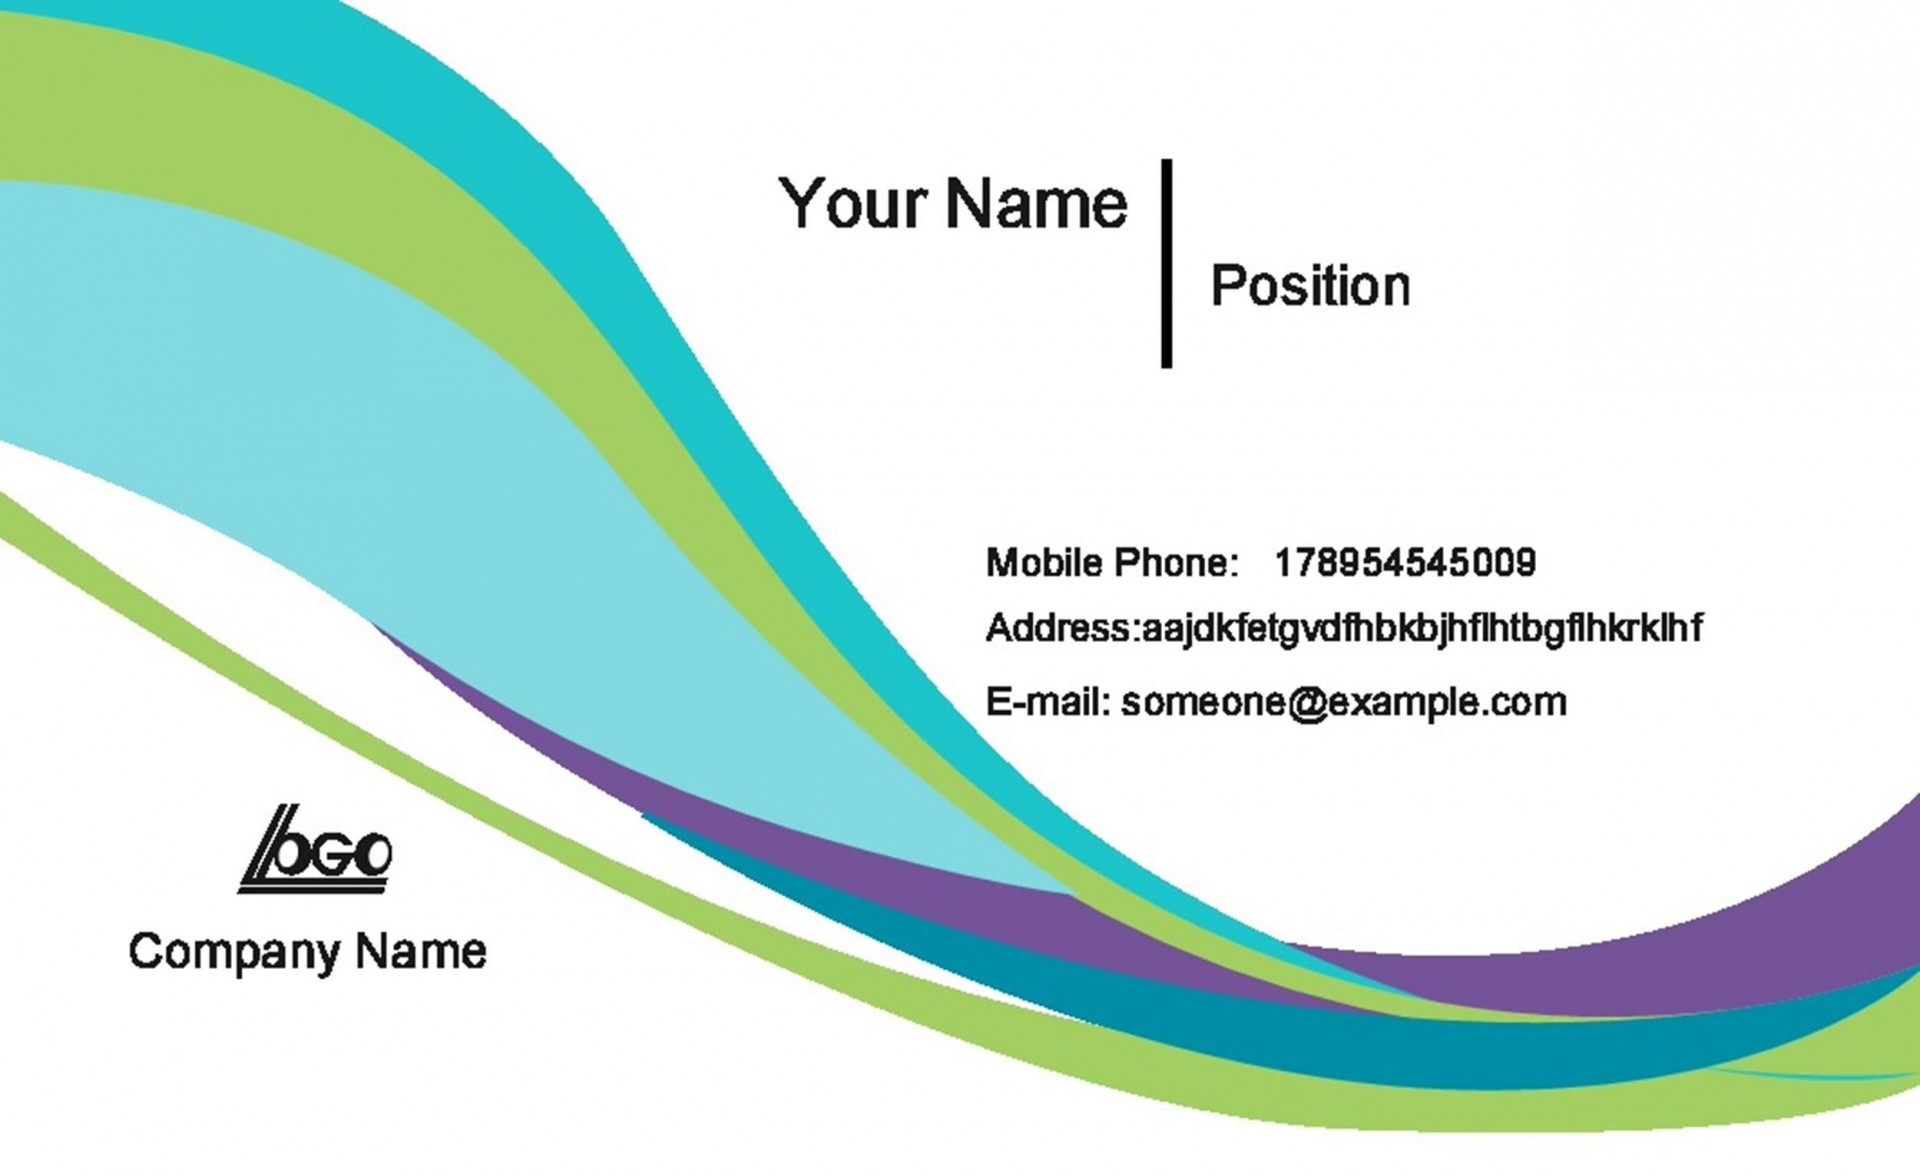 006 Dreaded Busines Card Template Microsoft Word Idea  Avery 8 Per Page How To Make A Layout On1920